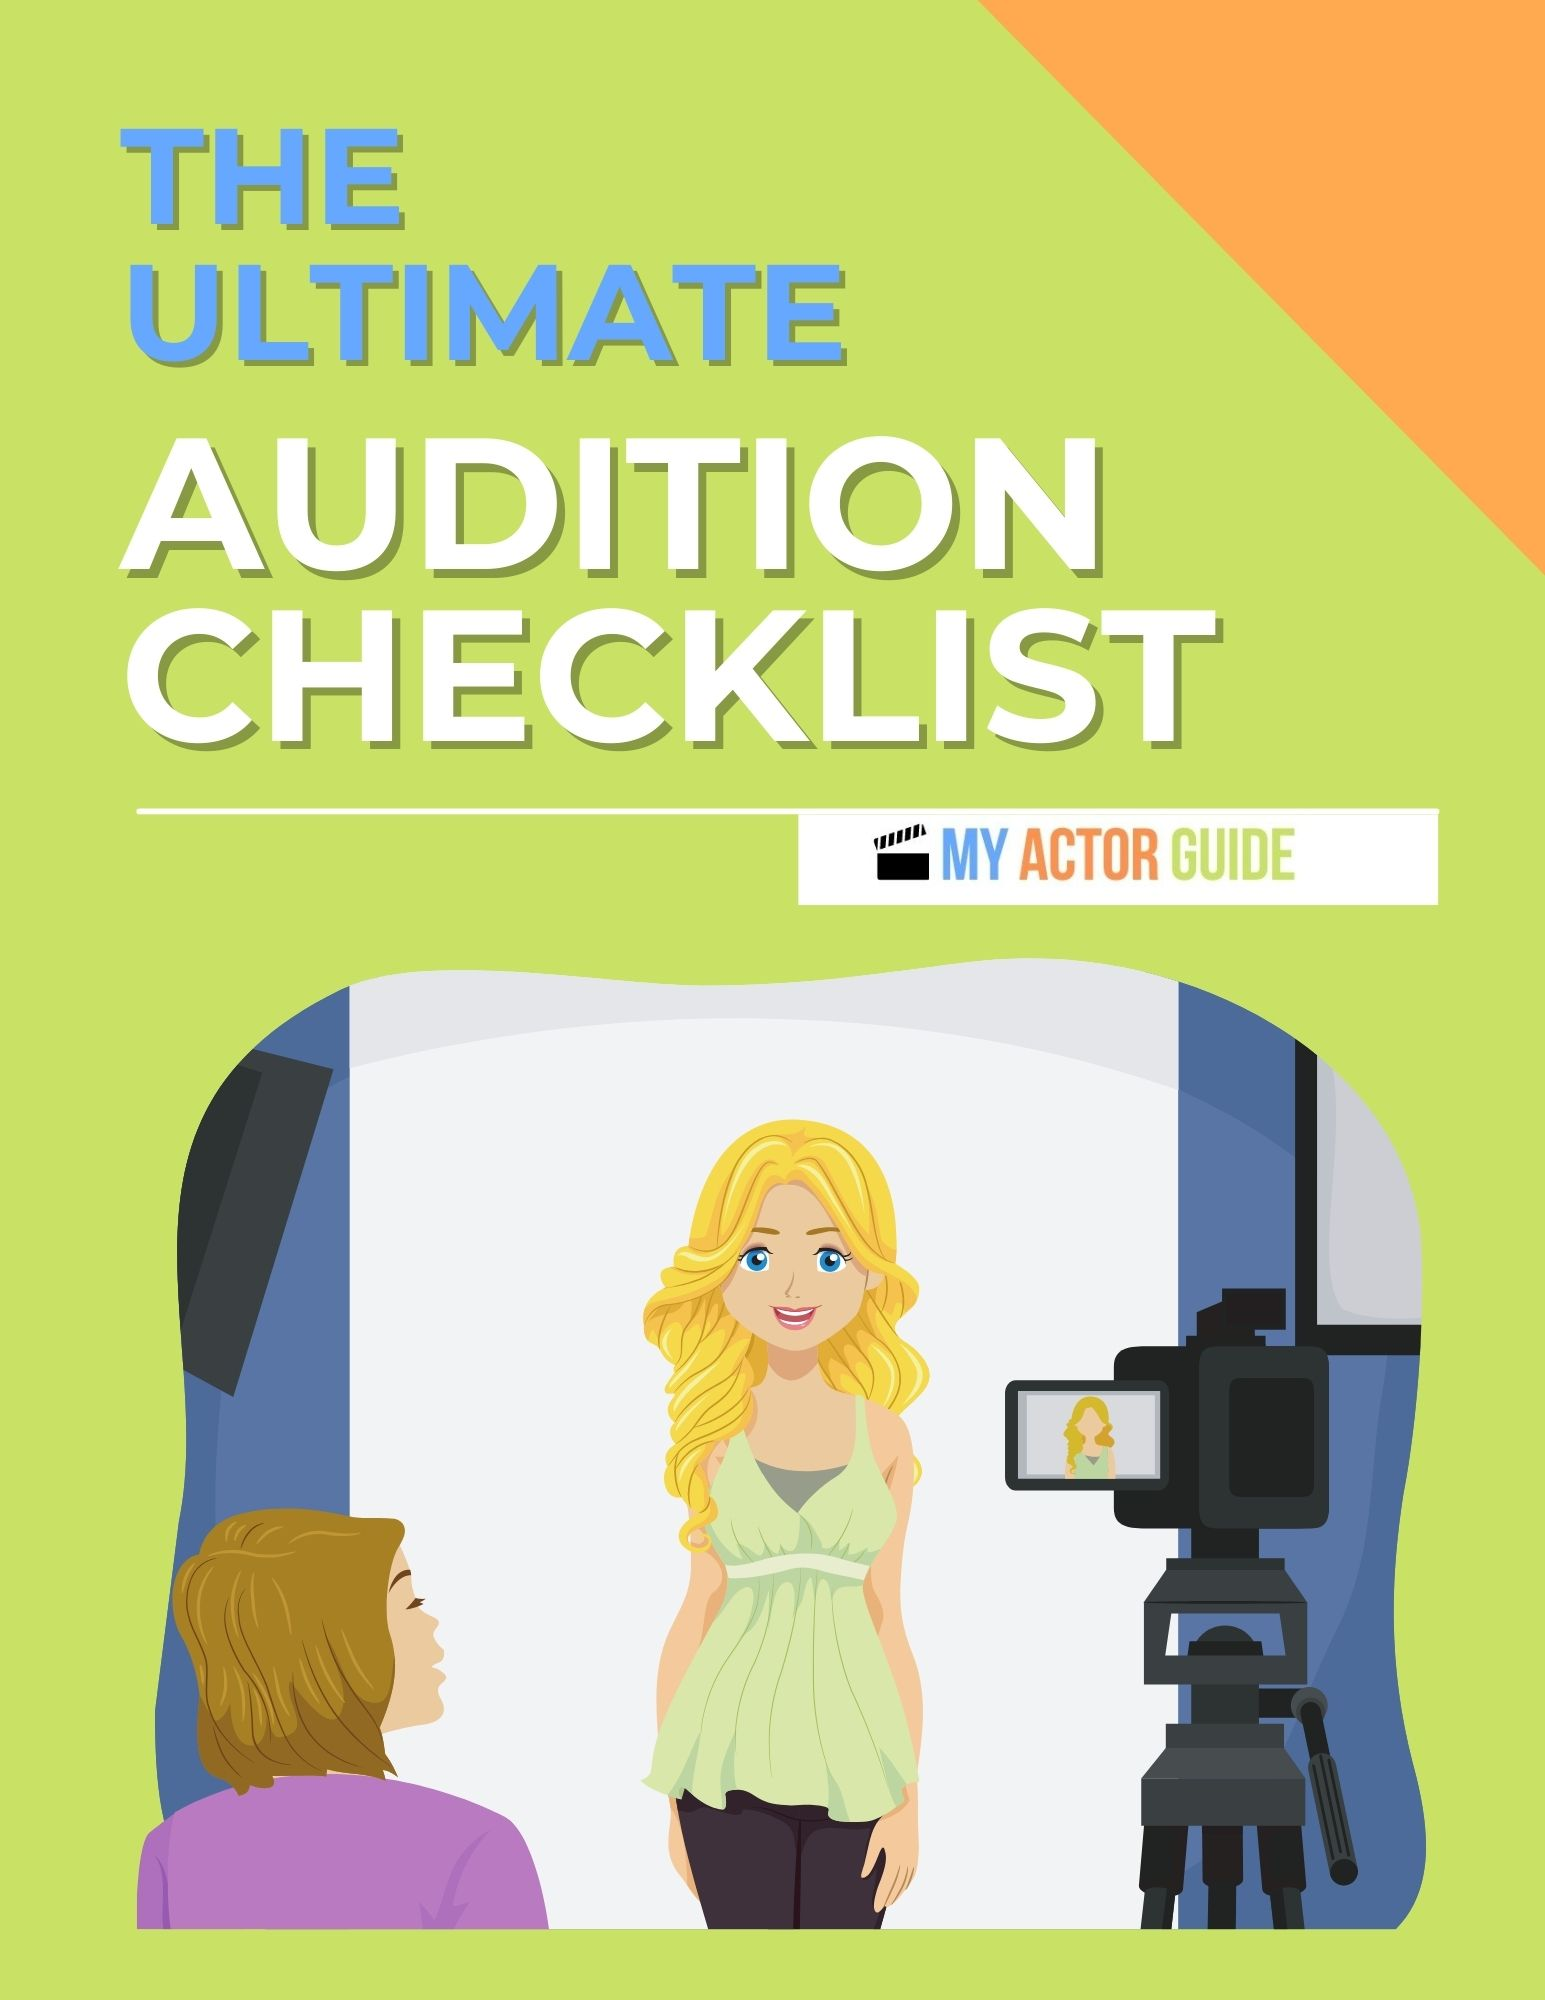 The Ultimate Audition Checklist for Actors. Learn how to audition and how to become an actor!